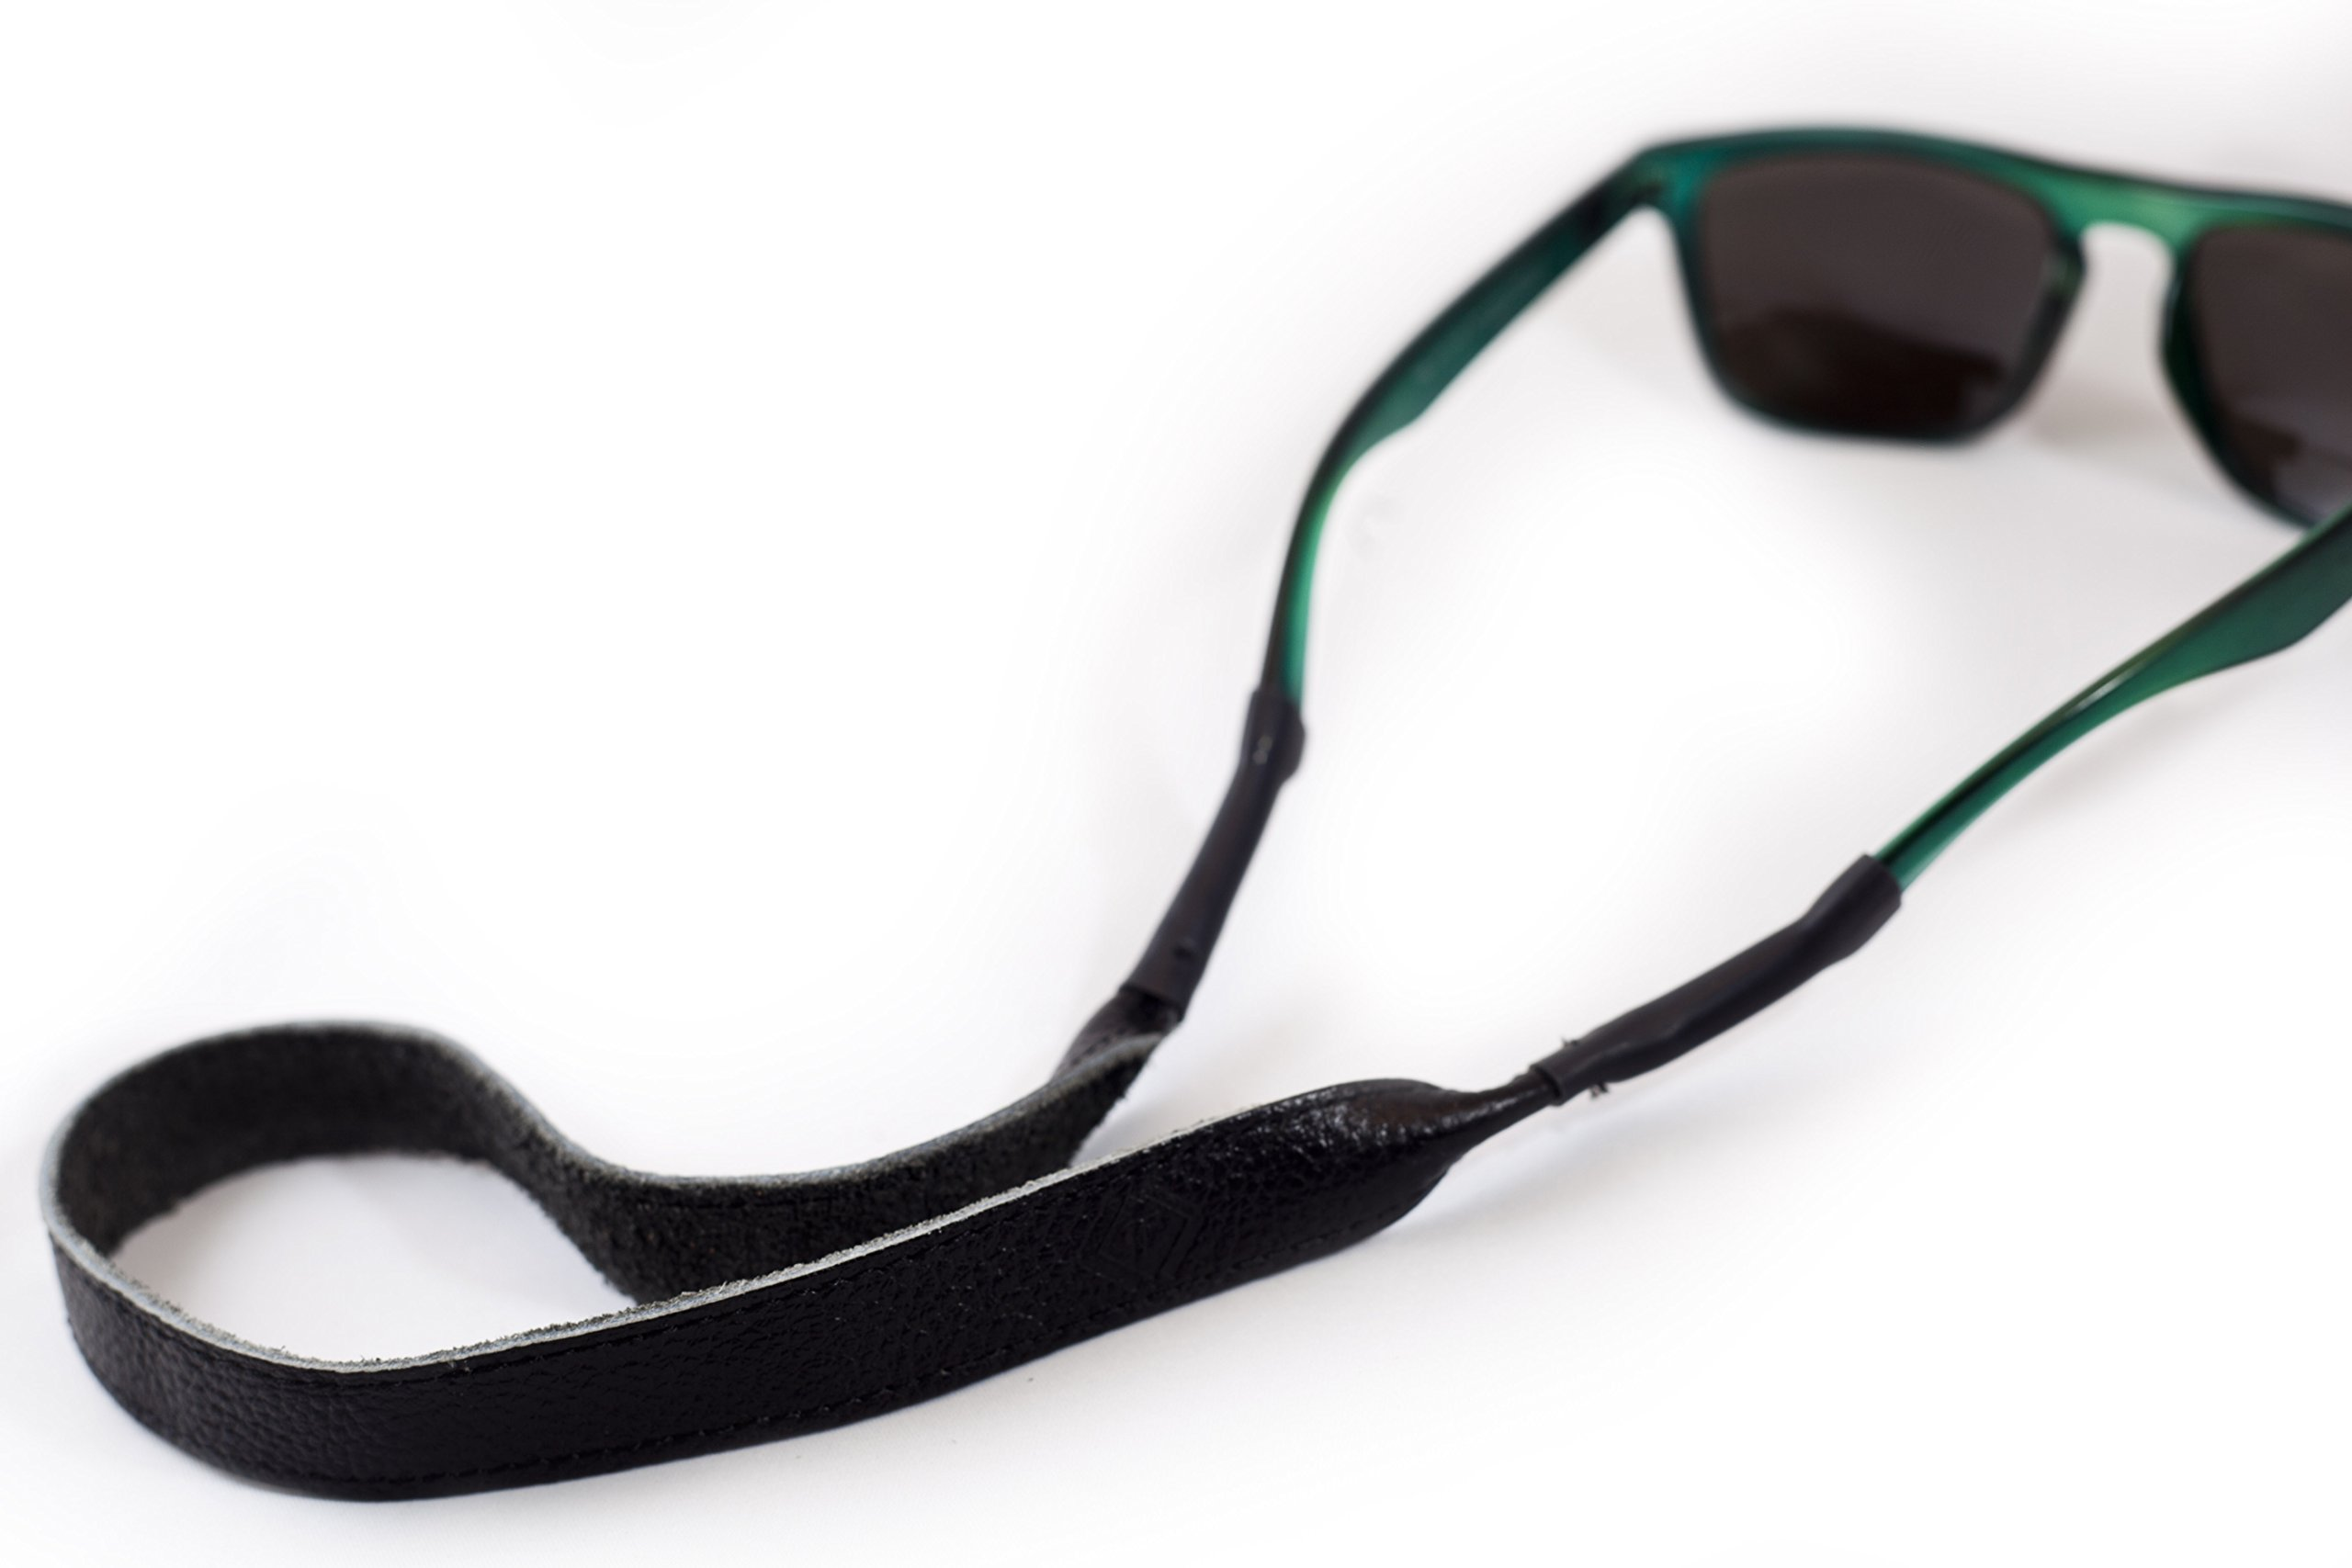 Black Leather Eye Wear Retainer / Sunglass Strap / Eye Wear Strap by TETHER